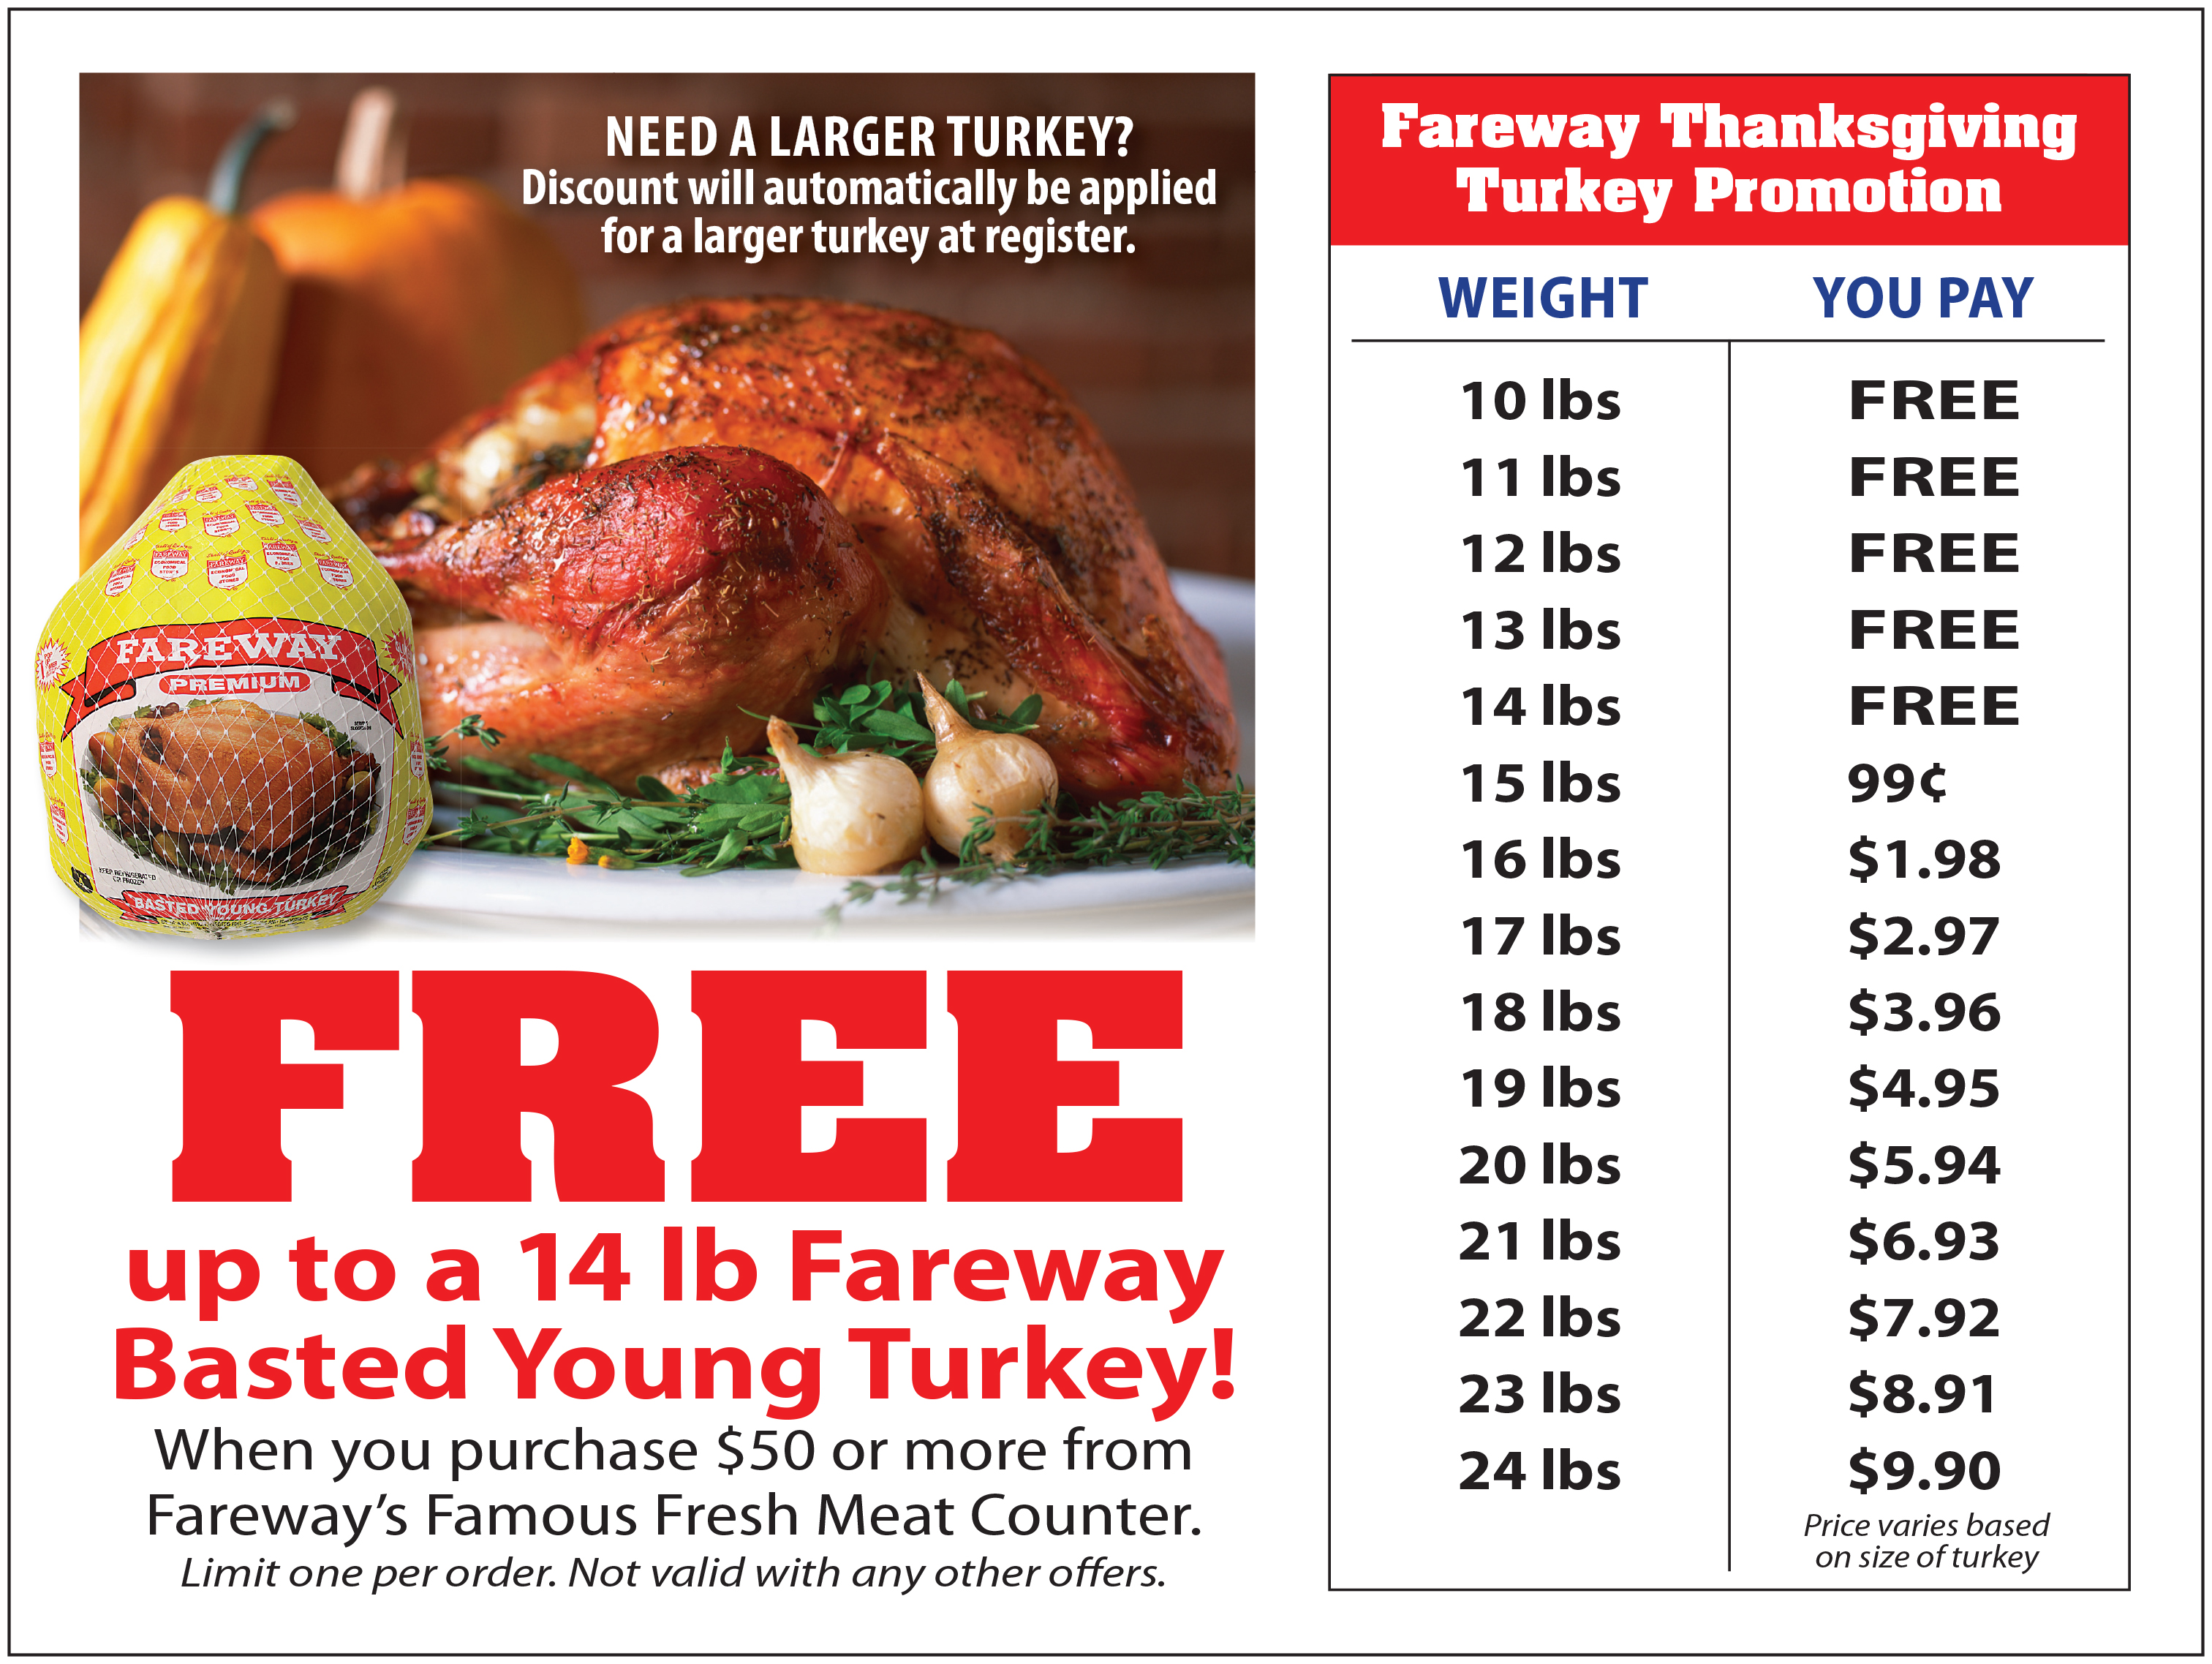 News Fareway Will Give You A Free Turkey This Thanksgiving Fareway